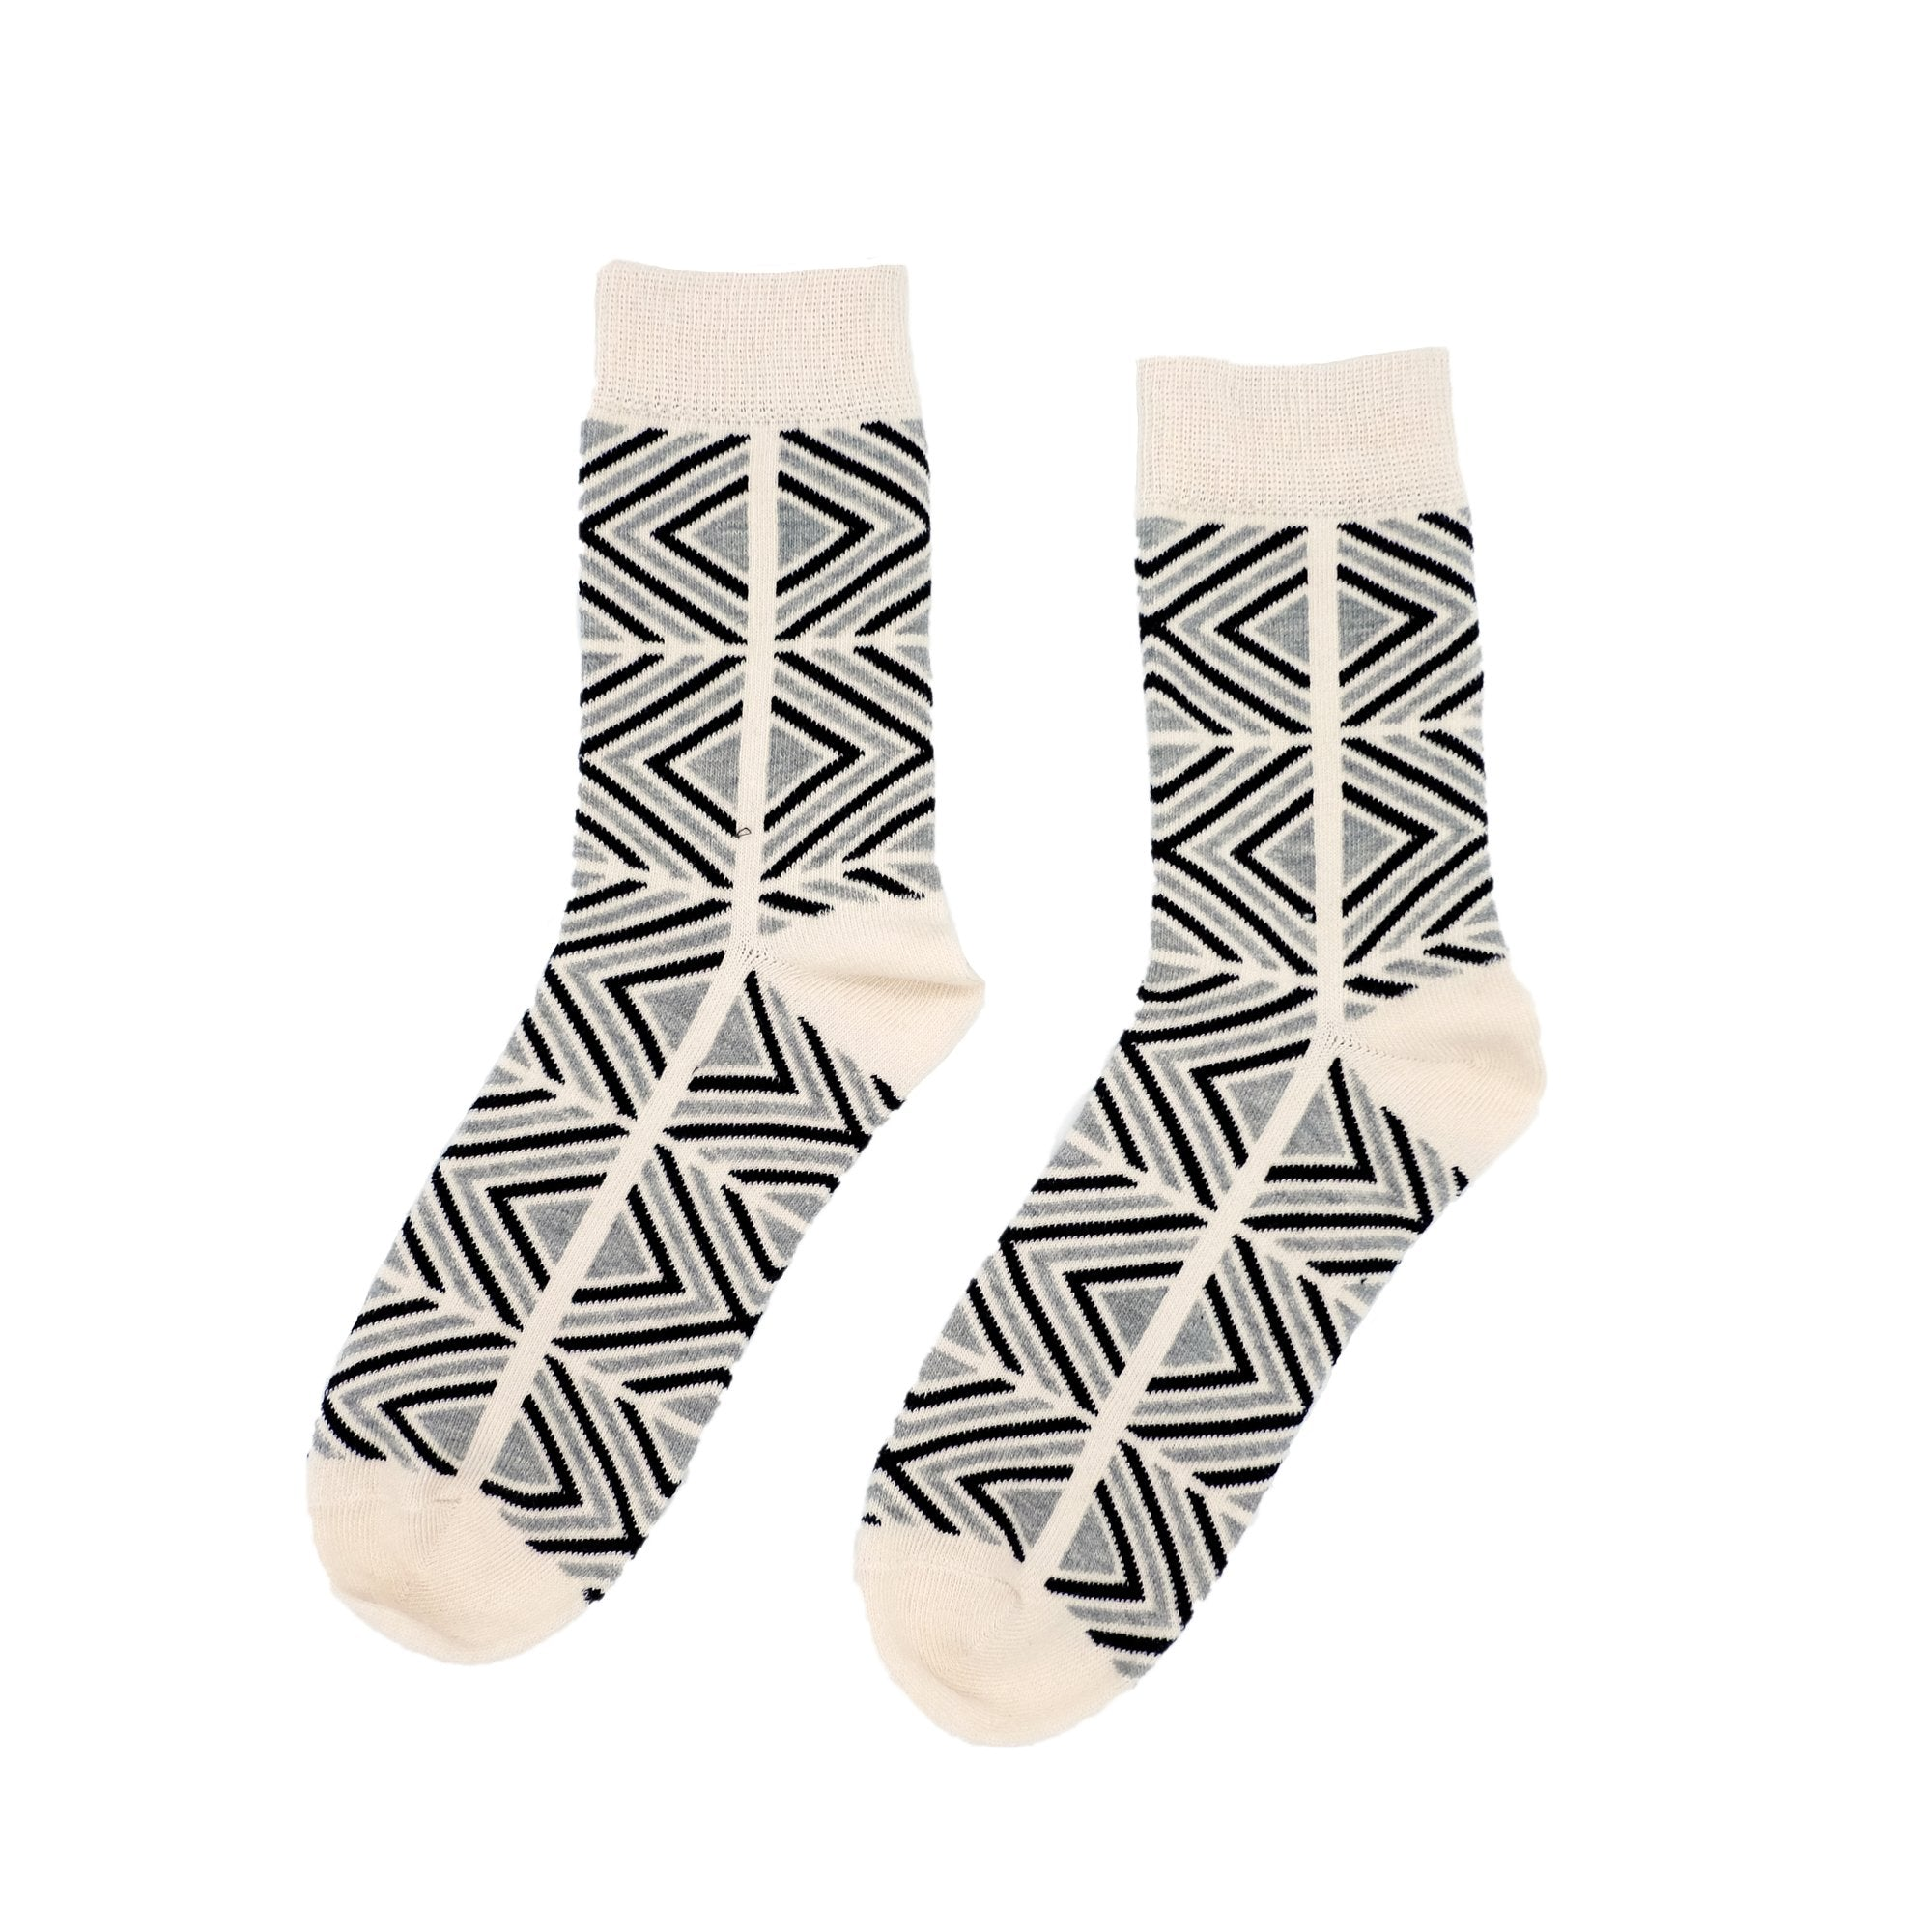 Get Lost In Square Socks - White